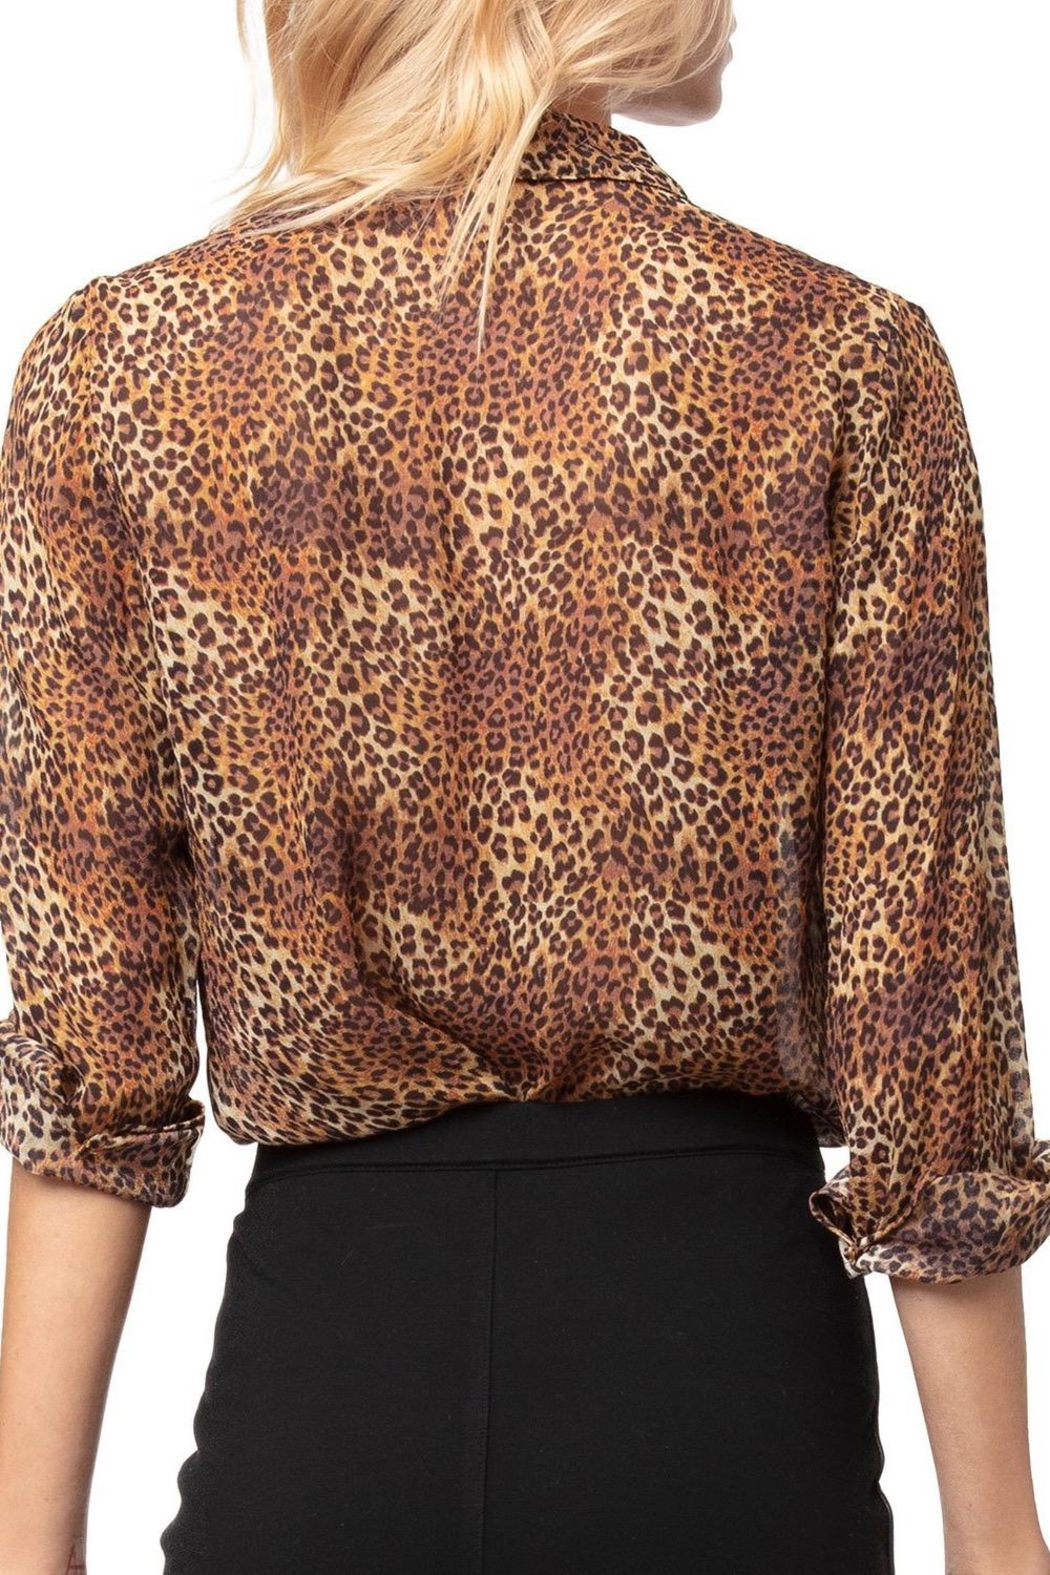 AS by DF Leopard Print Blouse - Front Full Image